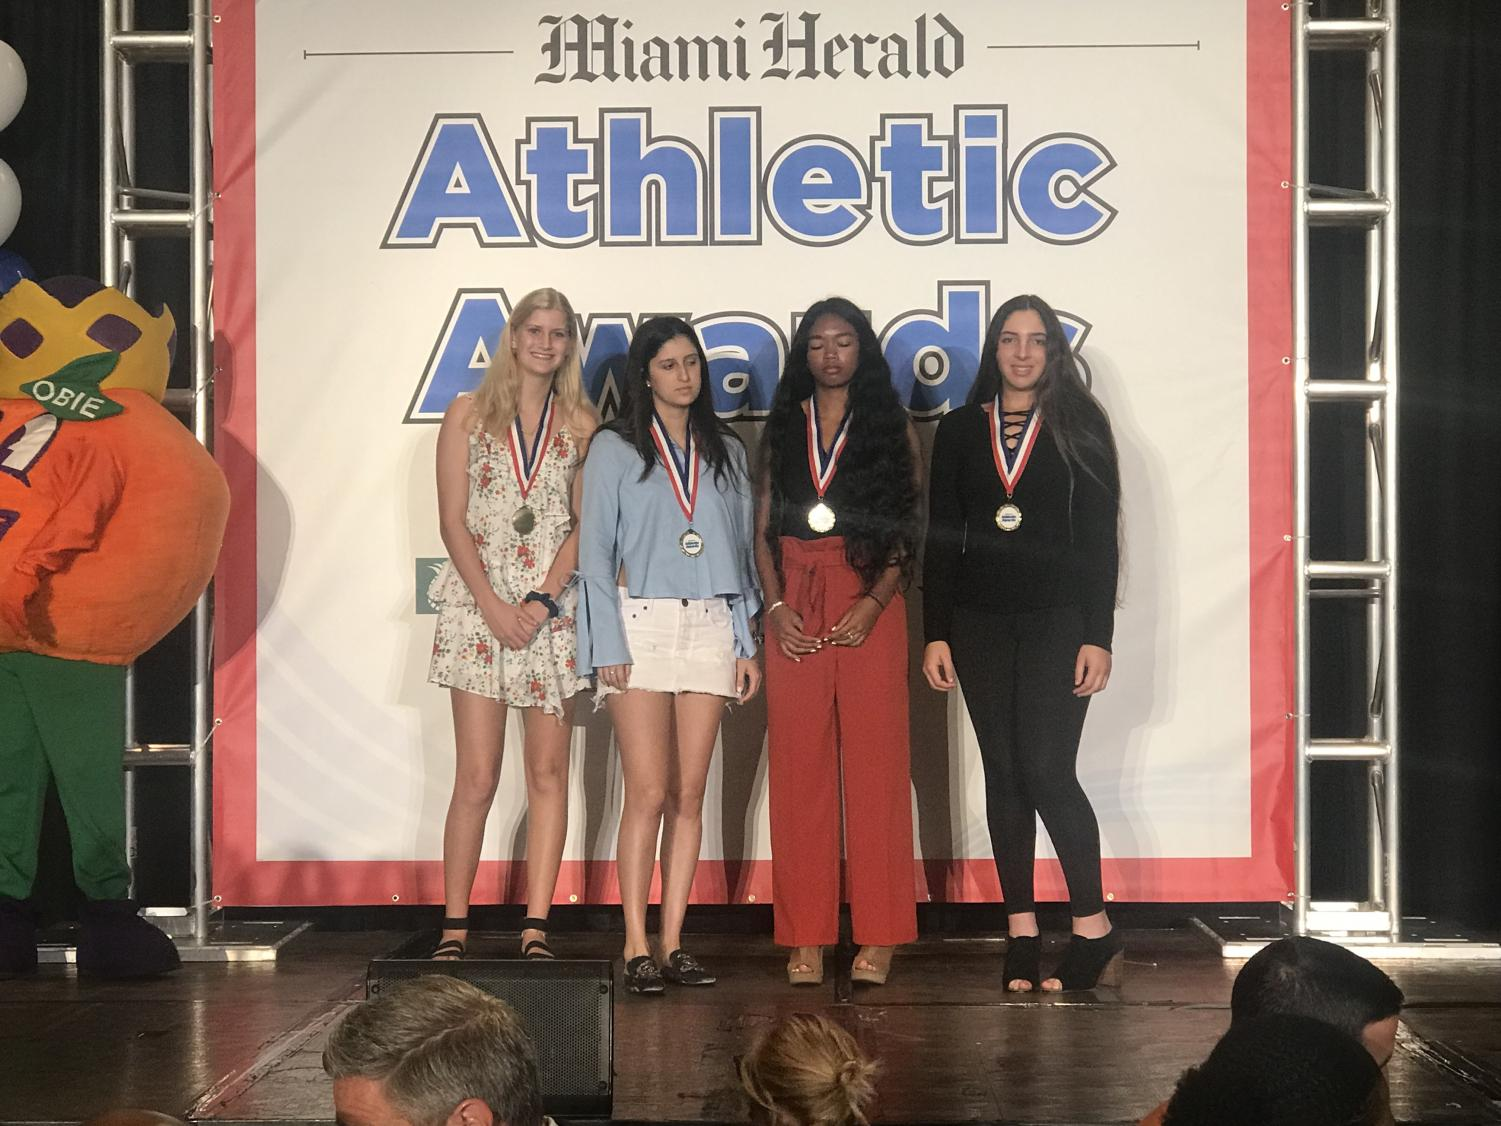 At the Miami Herald Athletic Awards, Spartans won big-time!